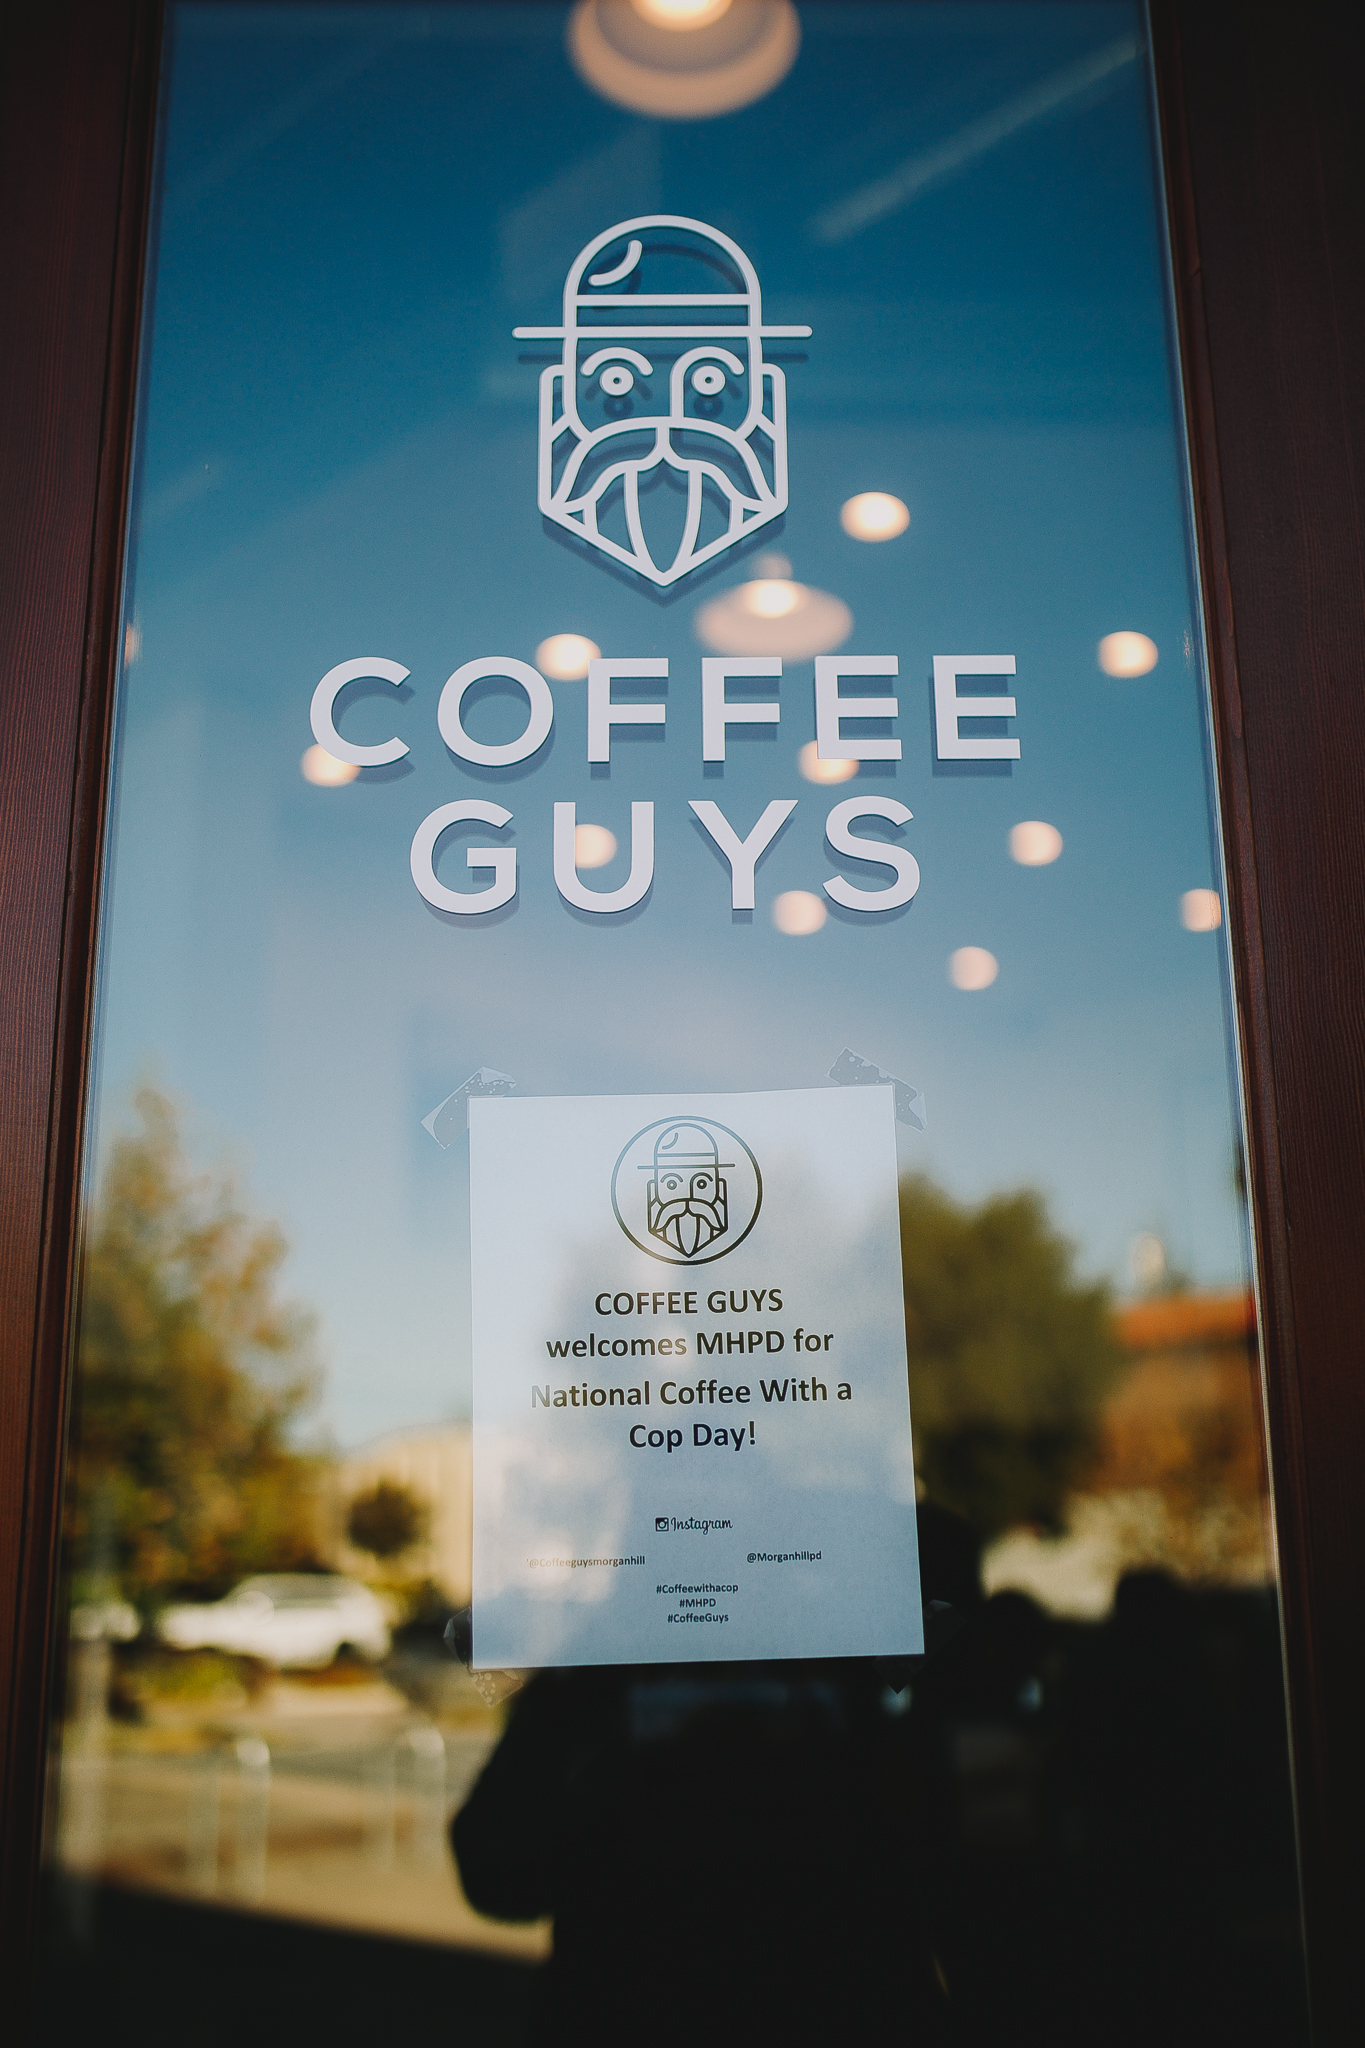 Coffee Guys downtown Morgan hill captured by Hailey Williams of Archer Inspired photography